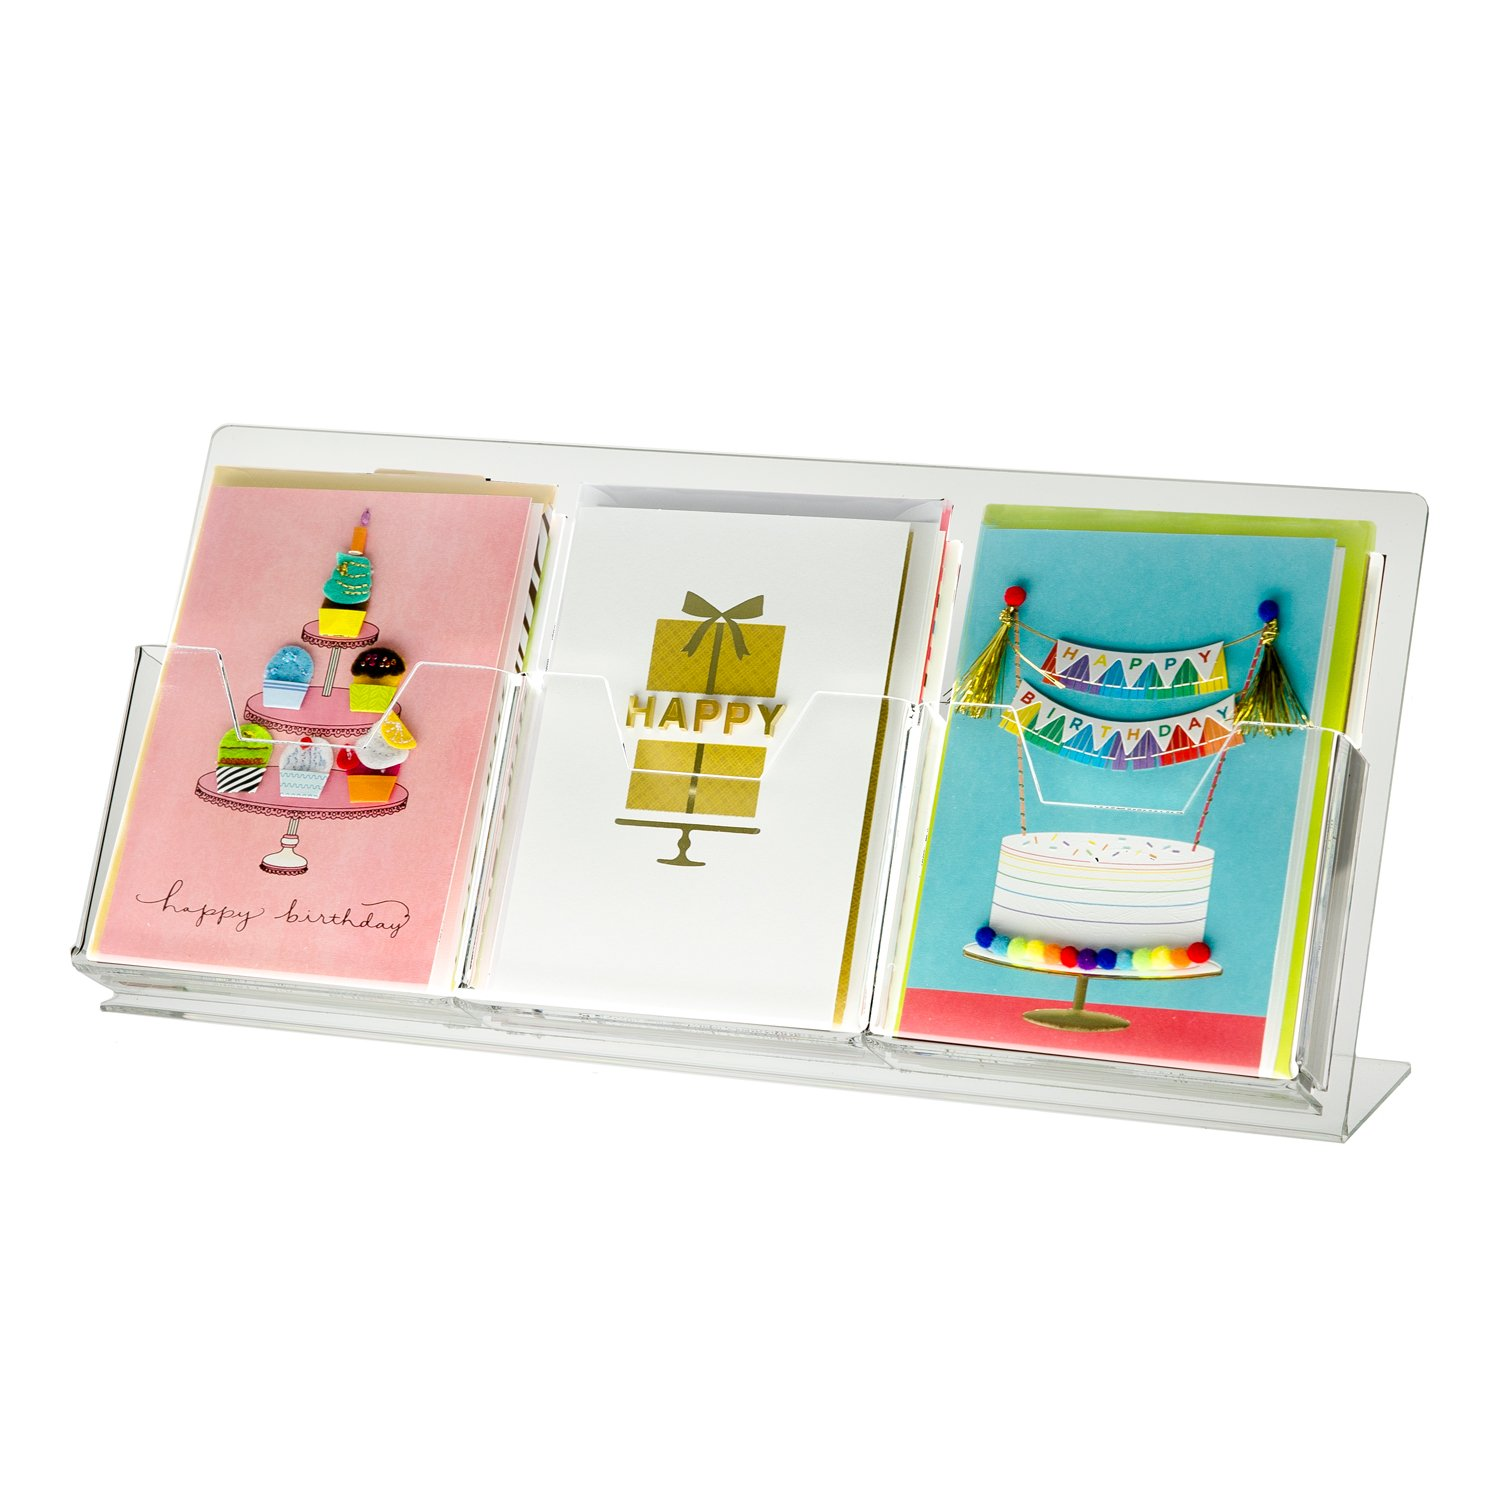 SOURCEONE.ORG Source One Deluxe Clear Acrylic Countertop Greeting Card Display 1 & 3 Pockets Available (1, 3 Pocket)